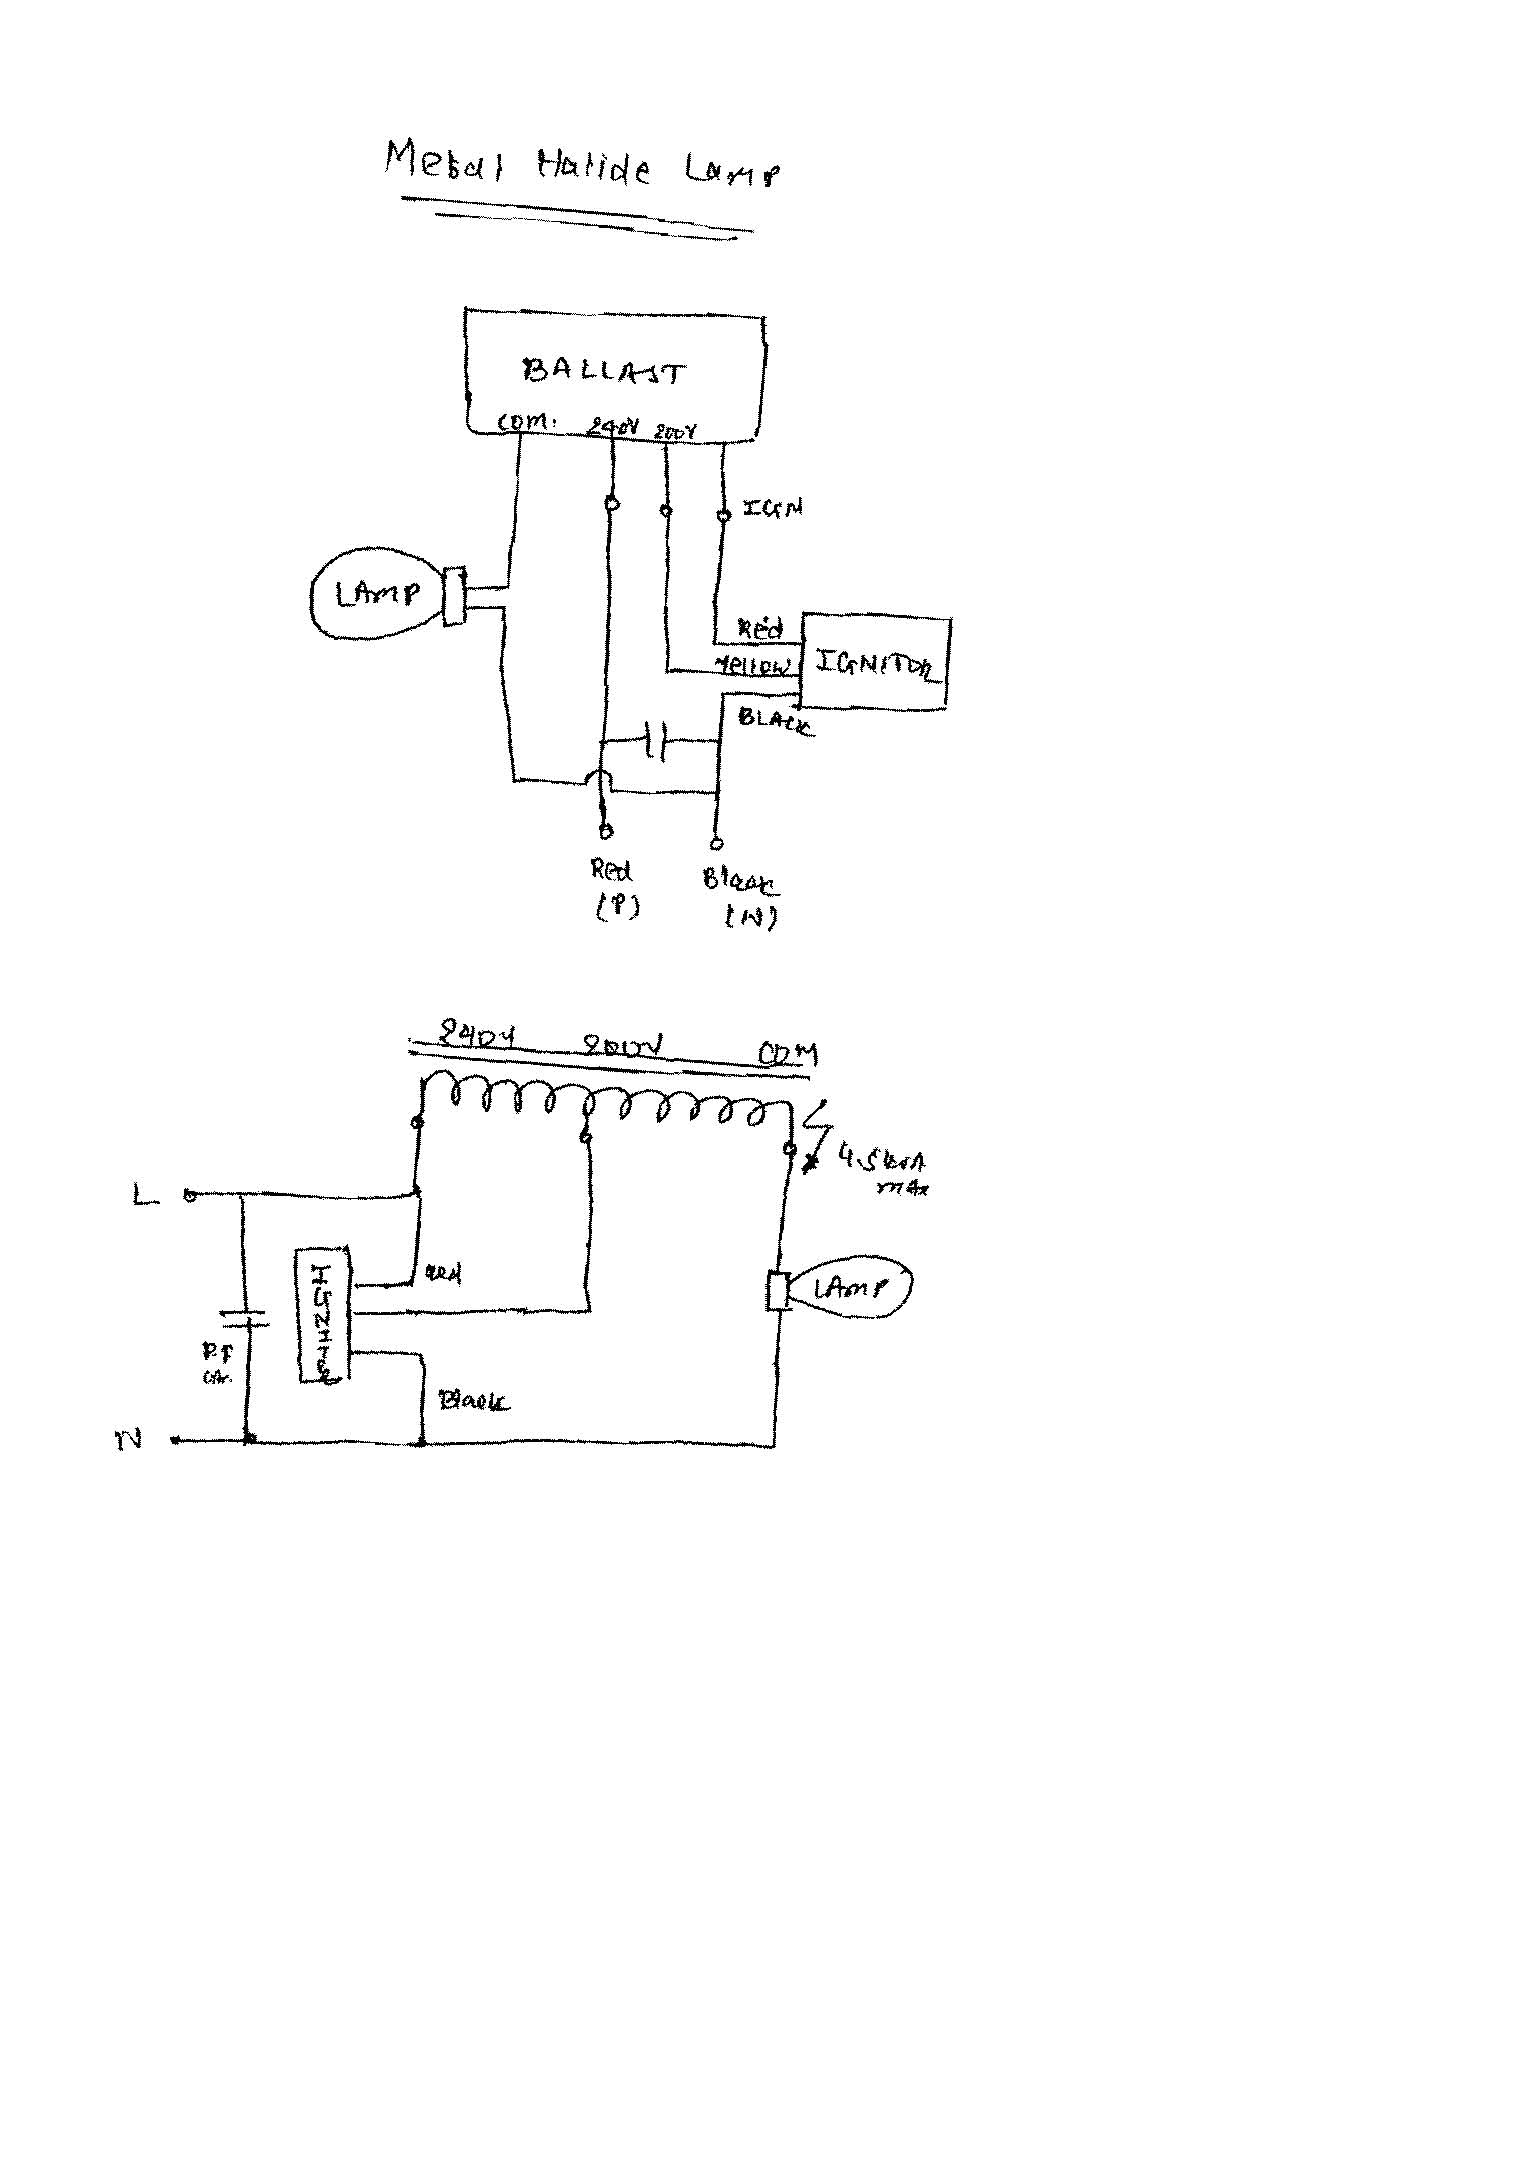 March 2011 Electrical Notes Articles Page 2 240v Stove Wiring Diagram Free Download Schematic Ballast Ignitor Capacitor Lamp Connection